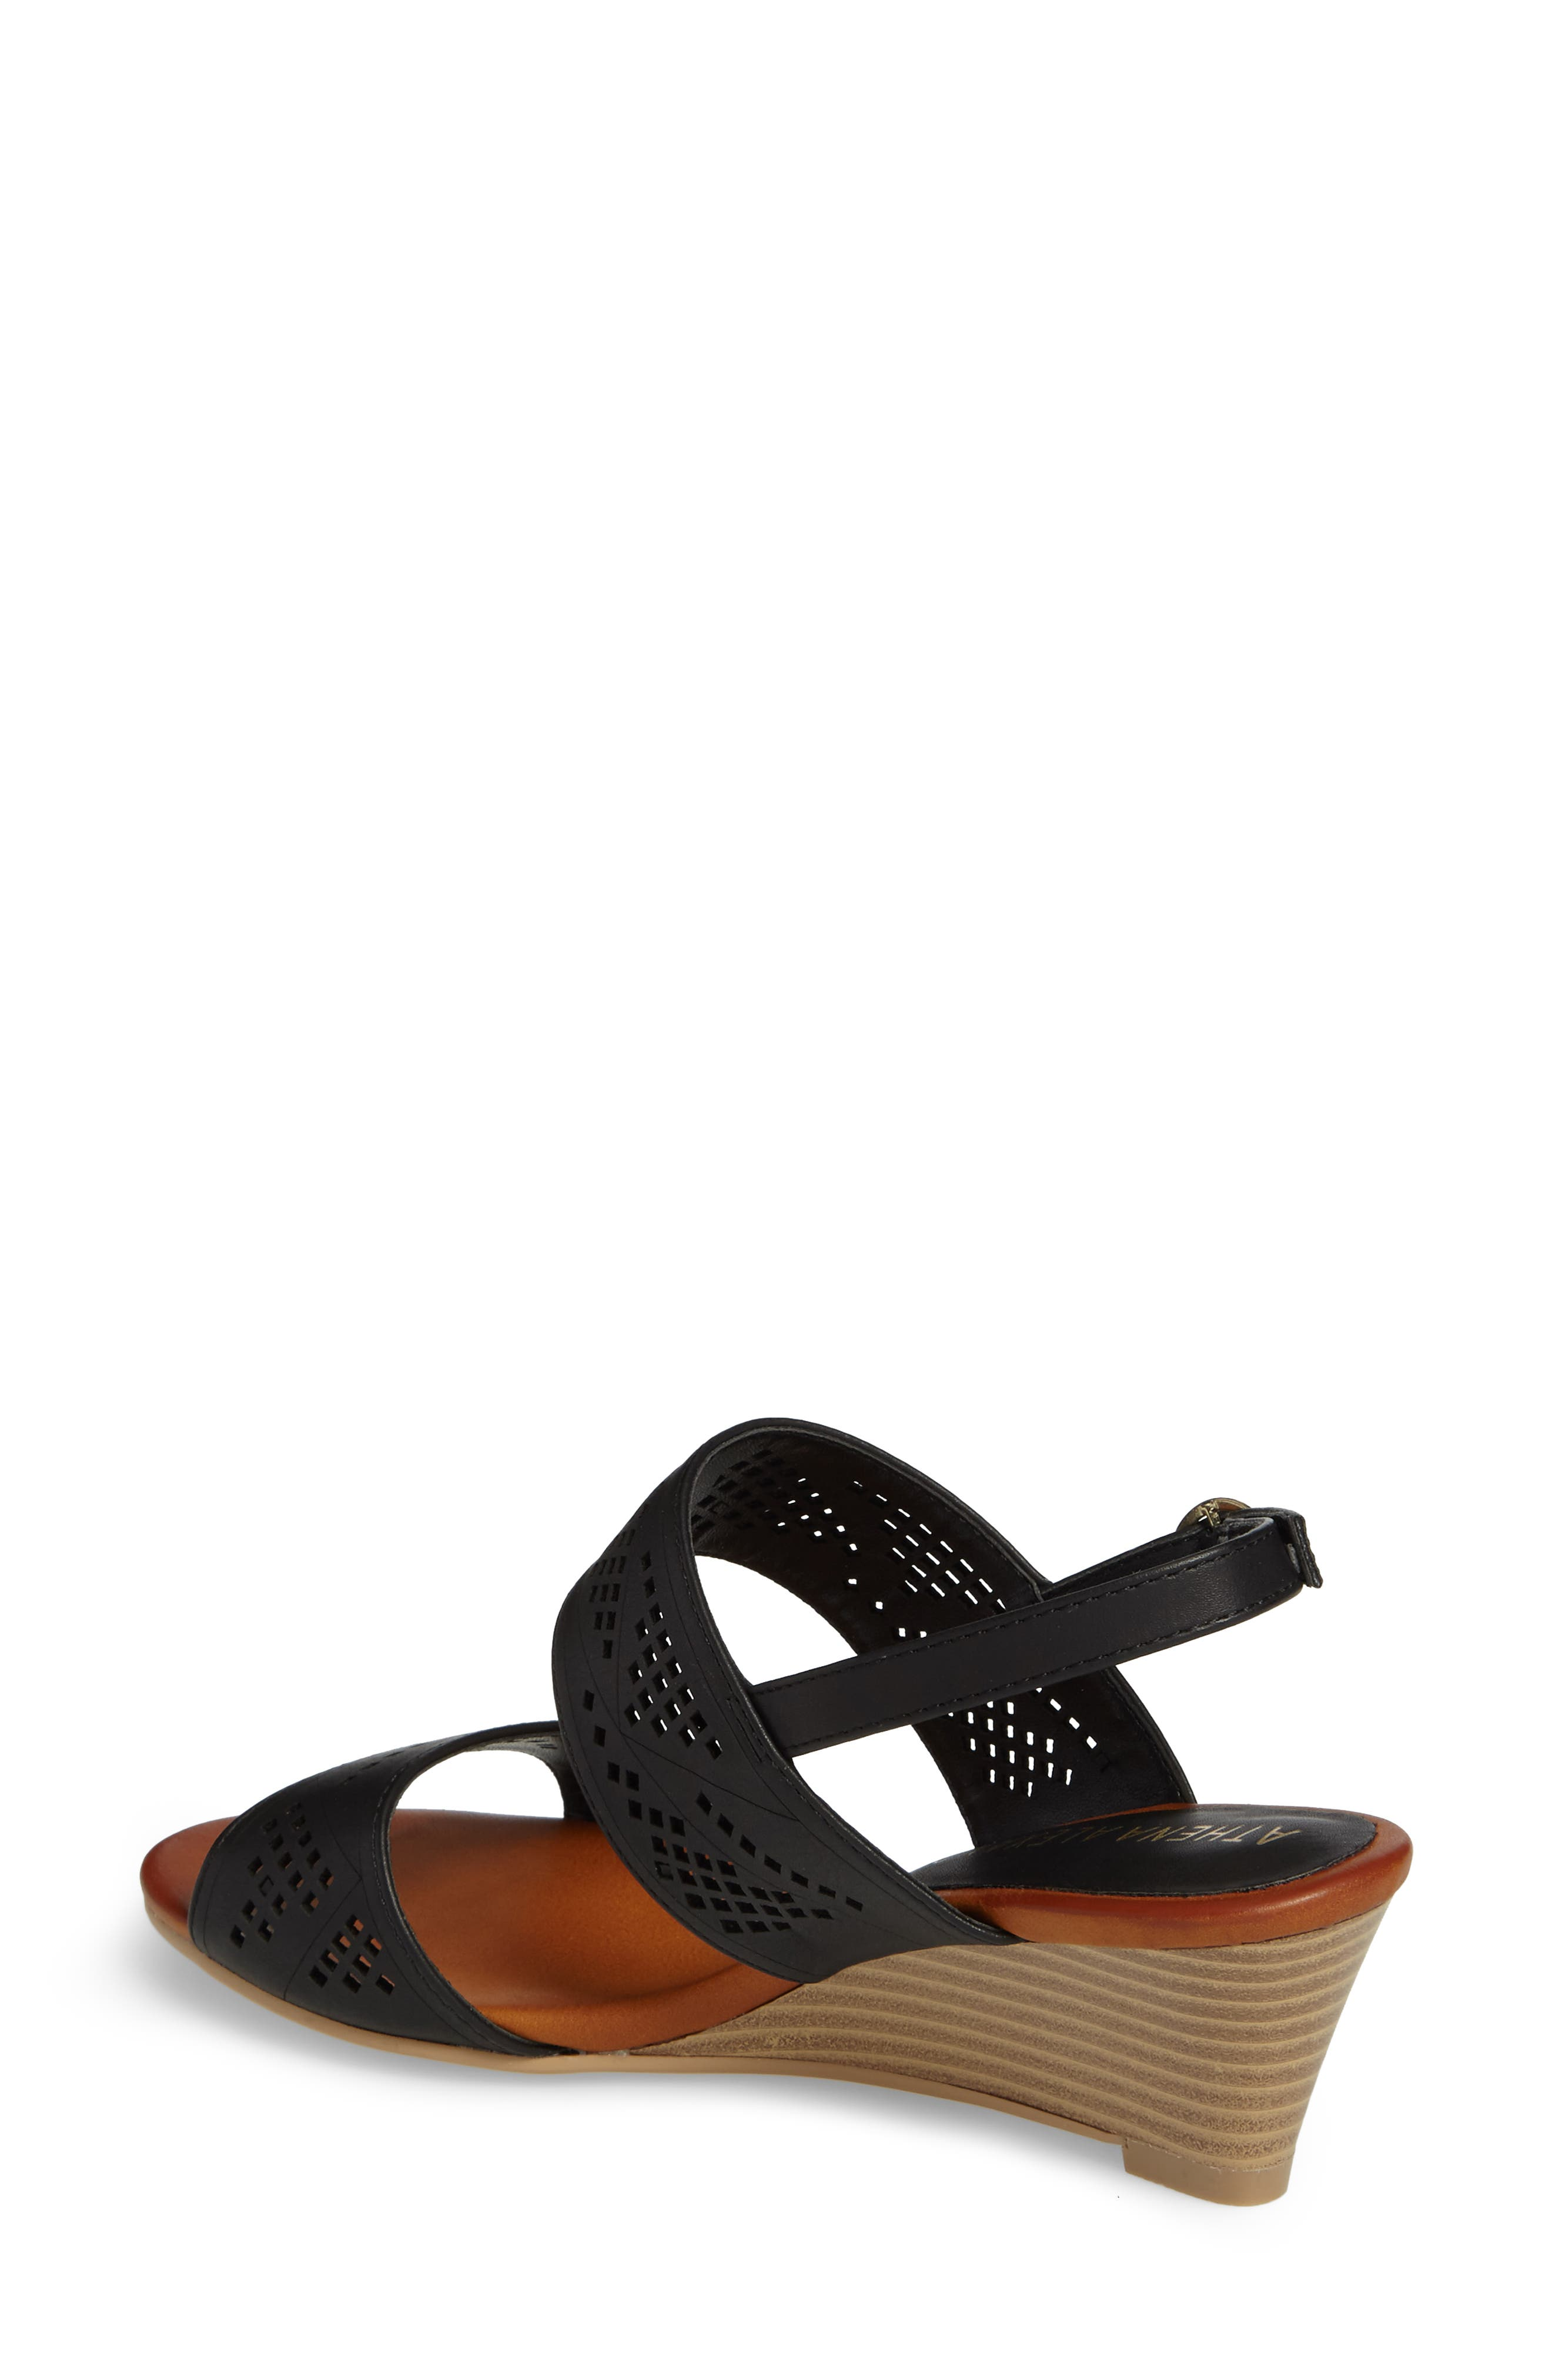 Alternate Image 2  - Athena Alexander Sparce Perforated Wedge Sandal (Women)